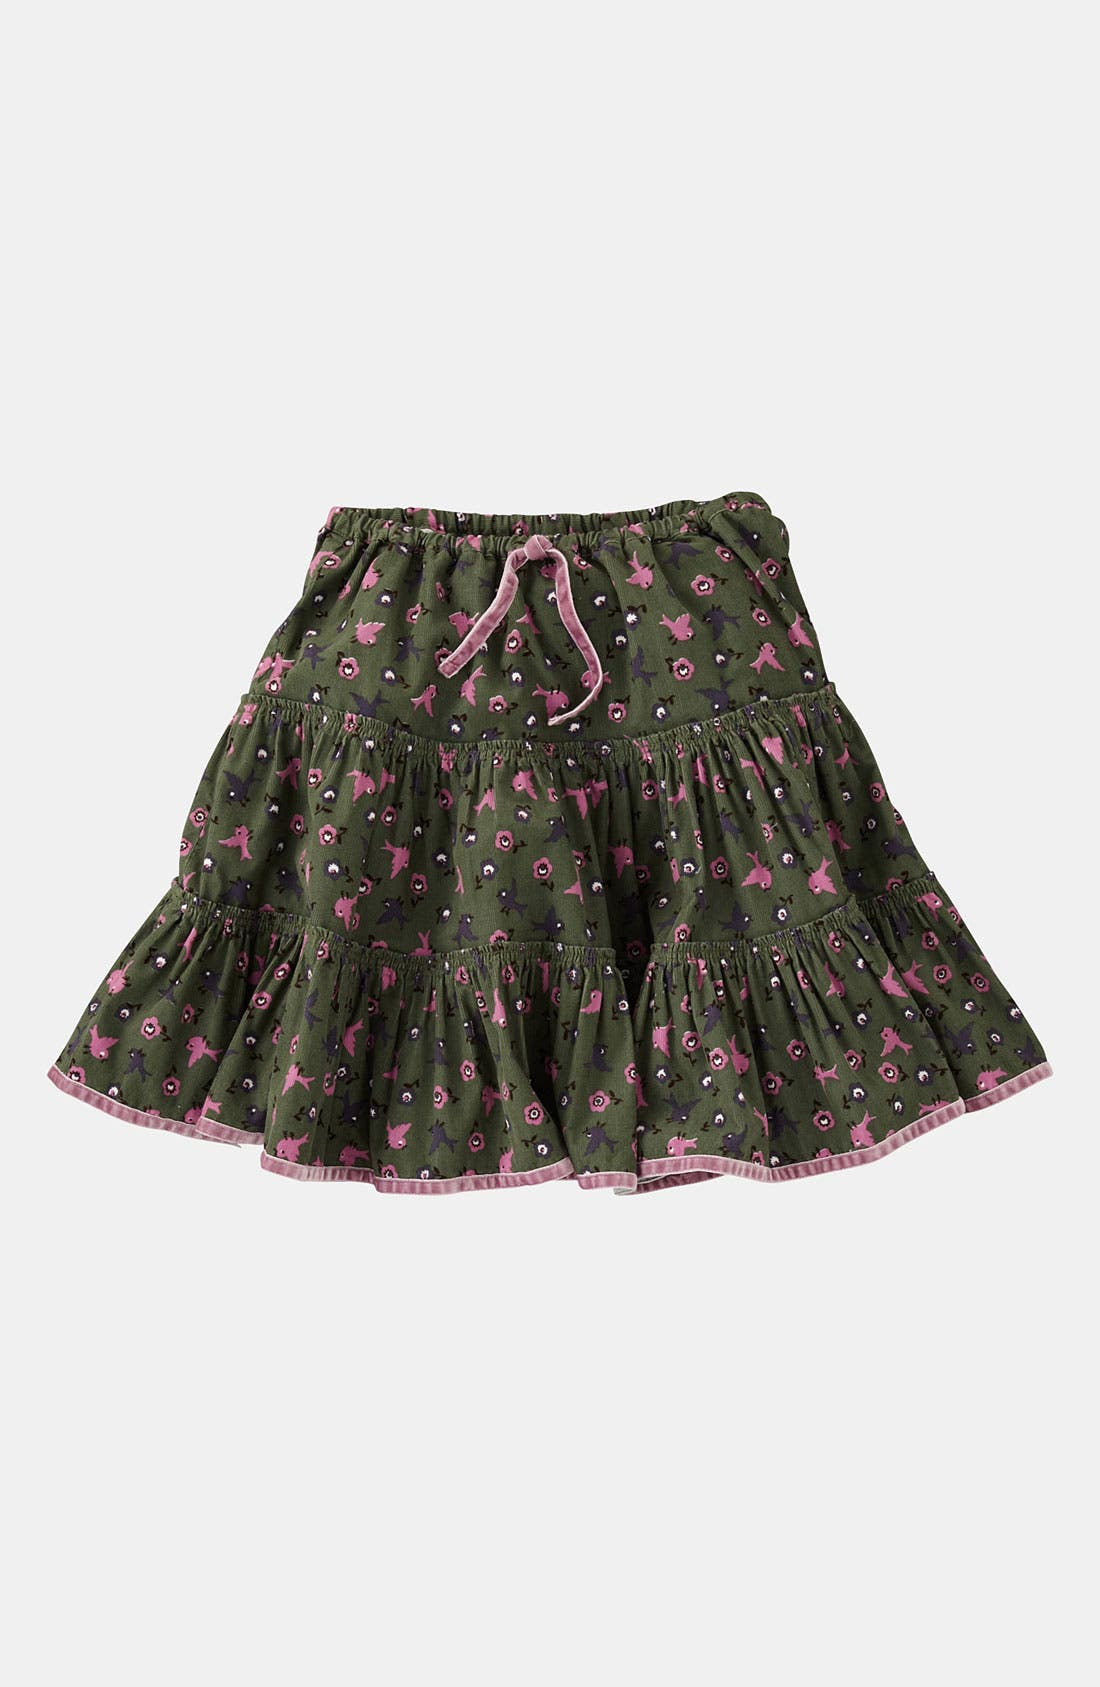 Alternate Image 1 Selected - Mini Boden 'Gypsy' Skirt (Little Girls & Big Girls)